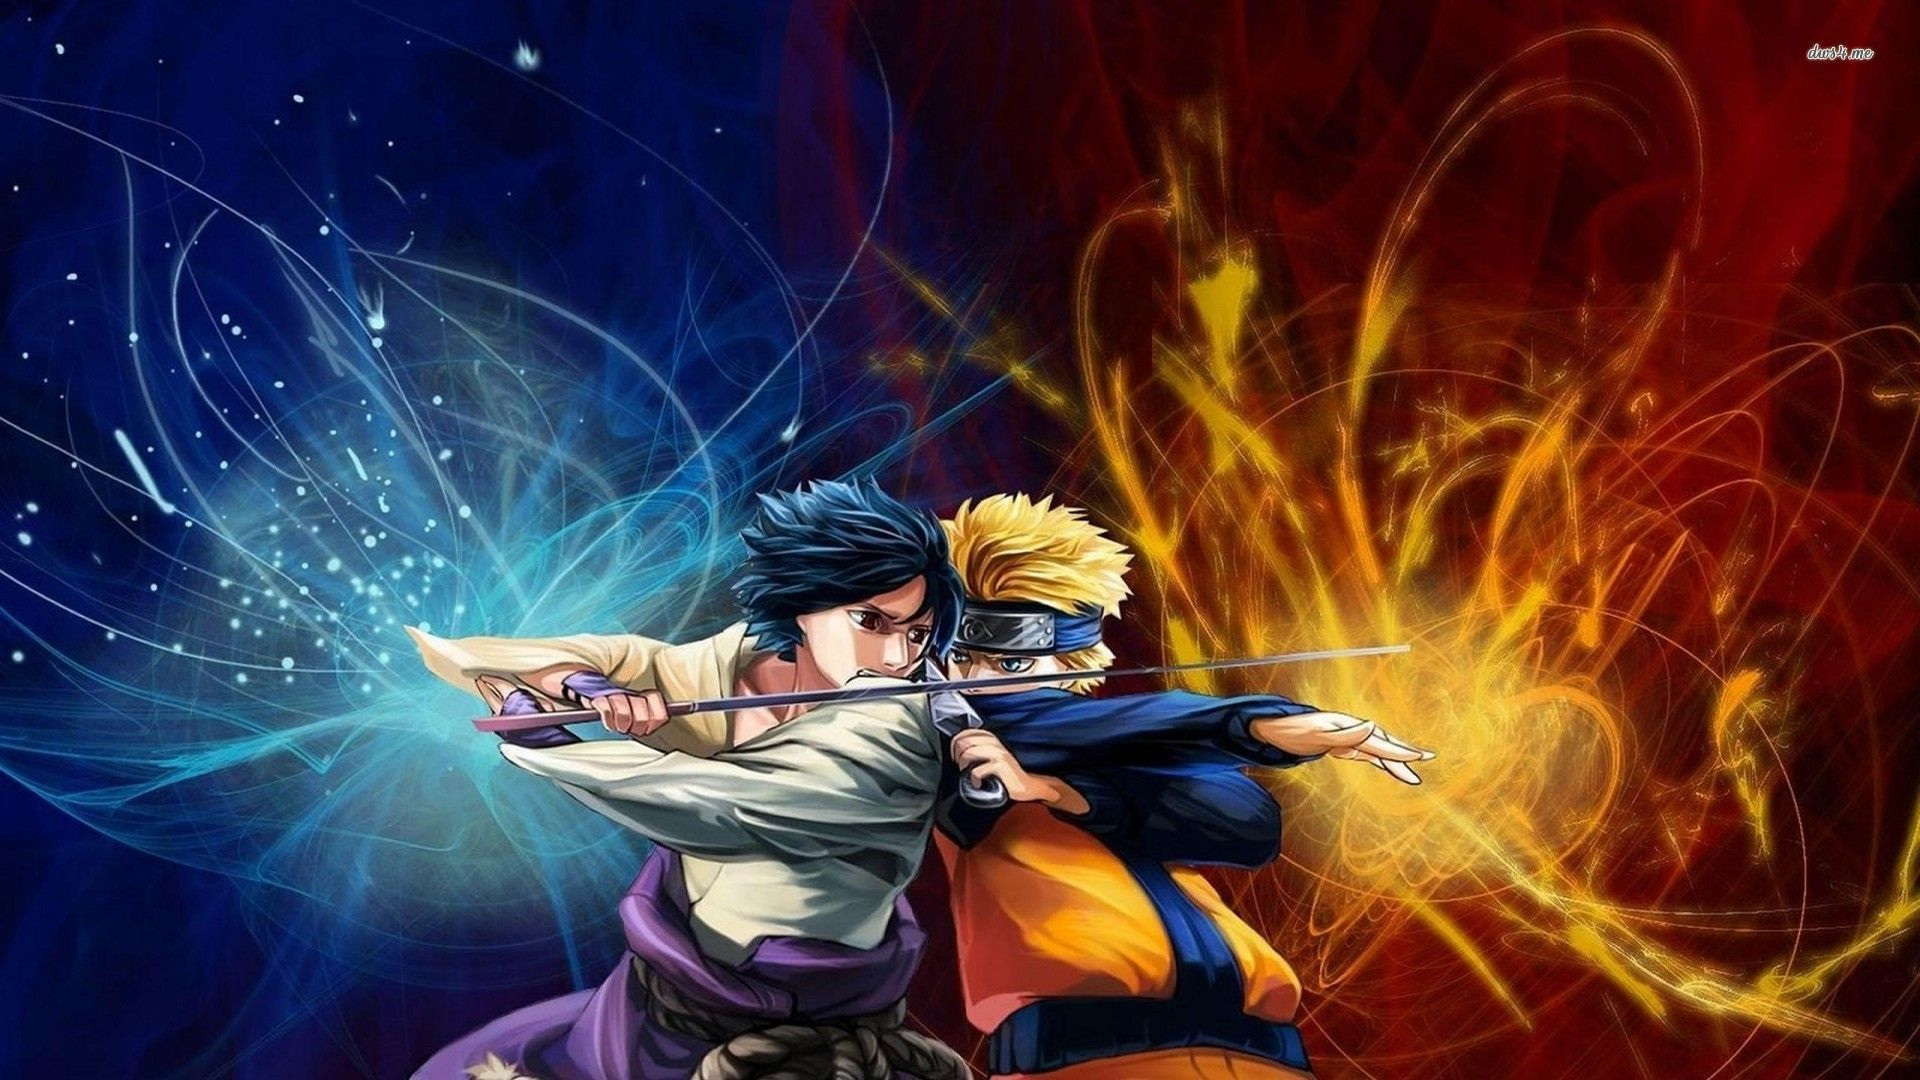 Naruto Shippuden Vs Sasuke Uchiha Wallpaper Hd 1920x1080 518 With